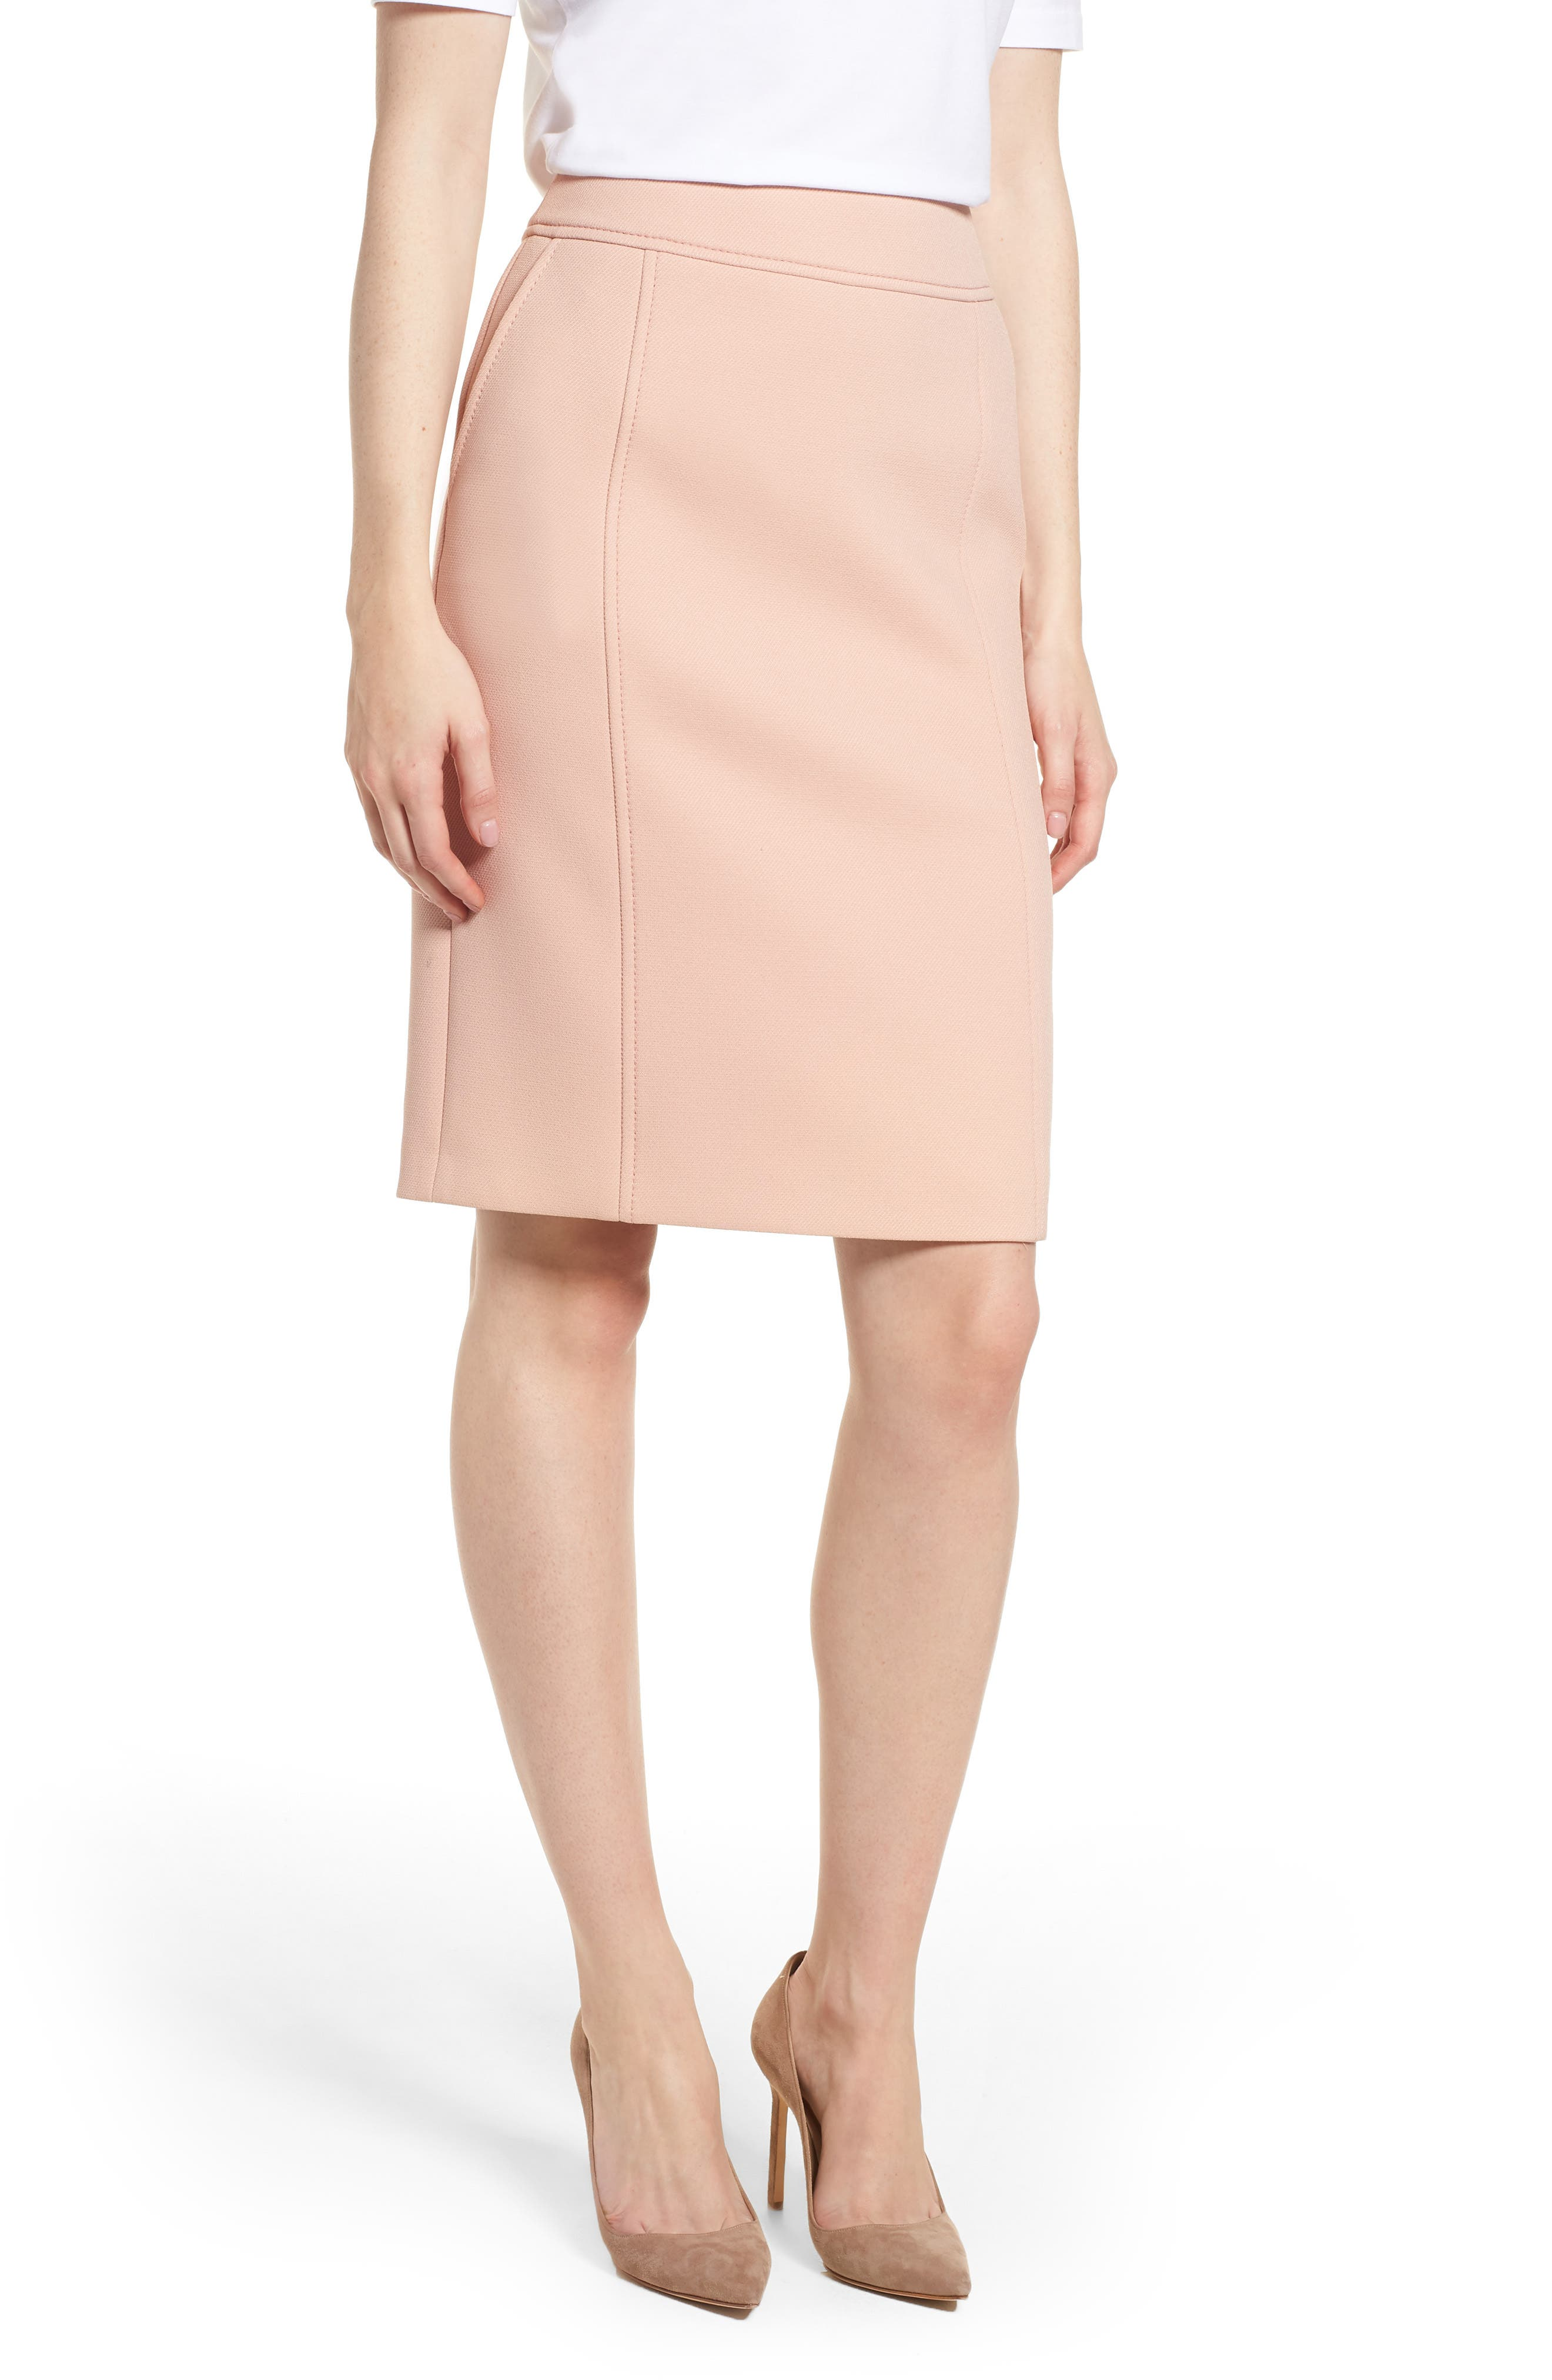 Vuleama Compact Twill Pencil Skirt,                         Main,                         color, 682